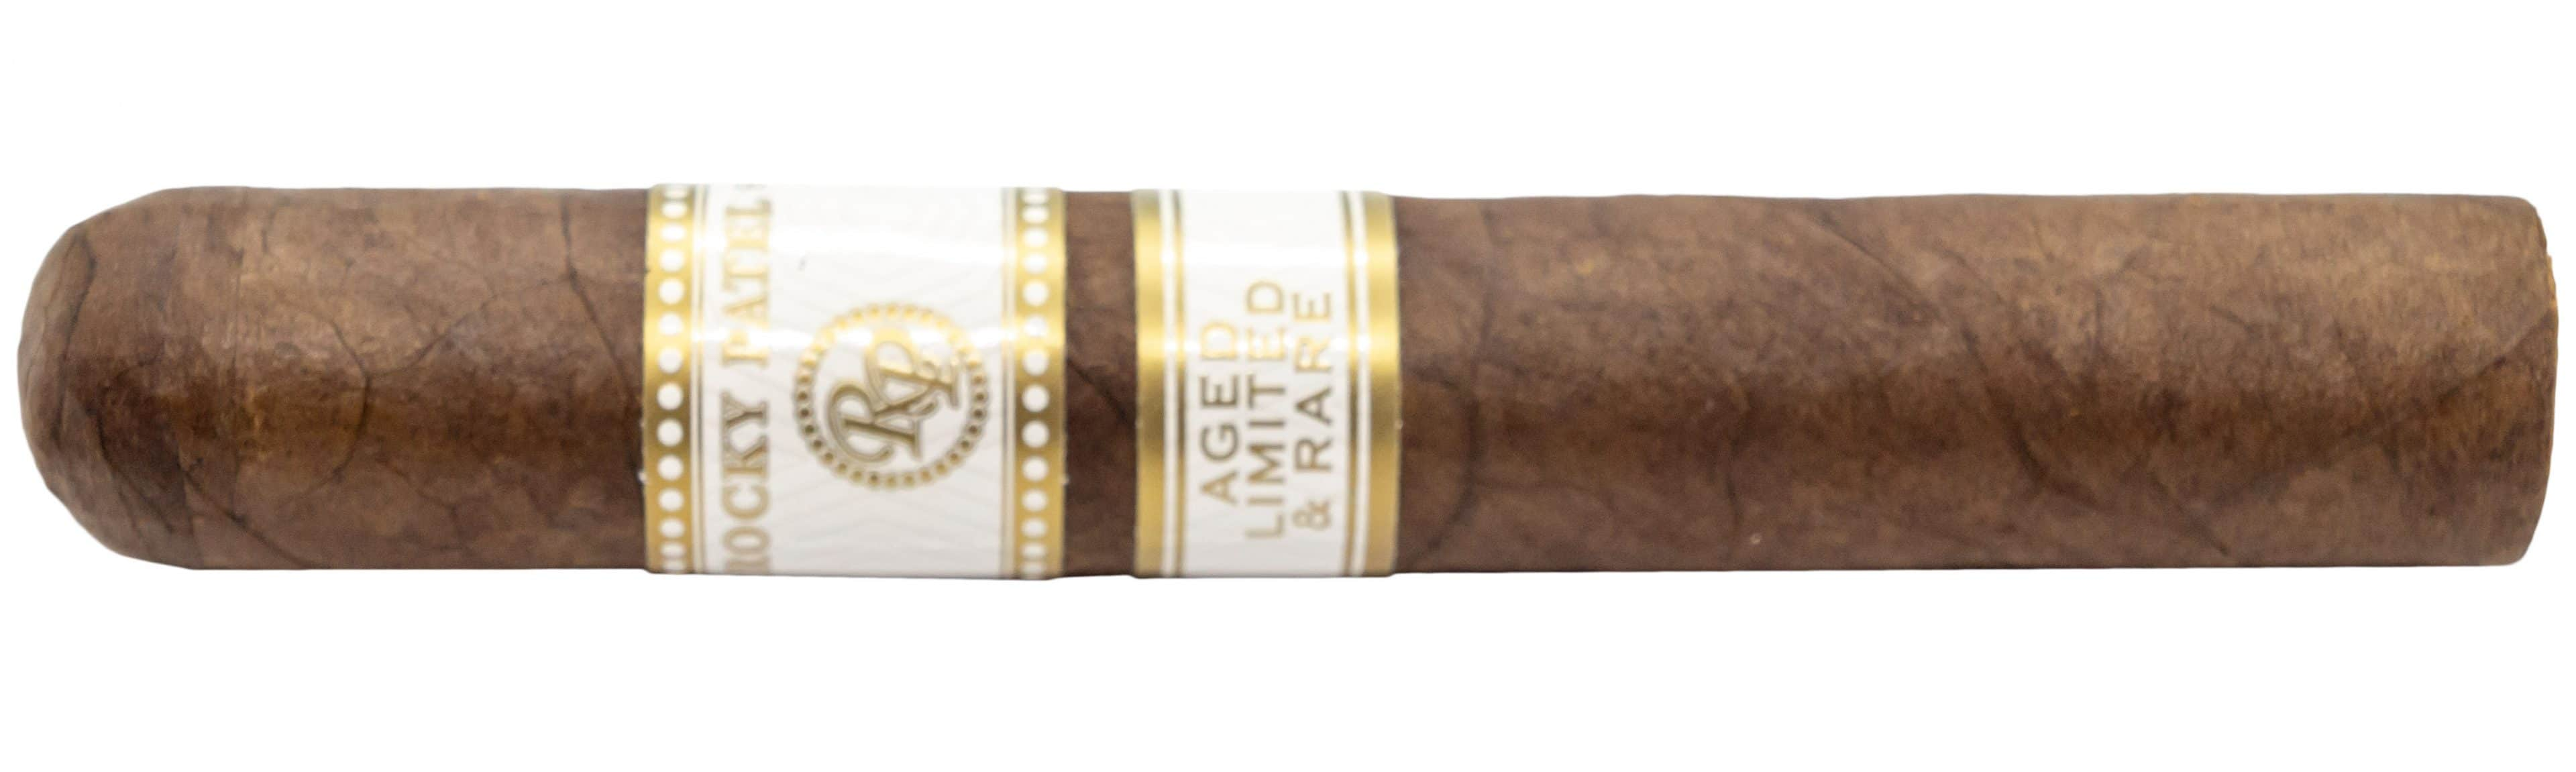 Blind Cigar Review: Rocky Patel | A.L.R. (Aged Limited & Rare) Robusto